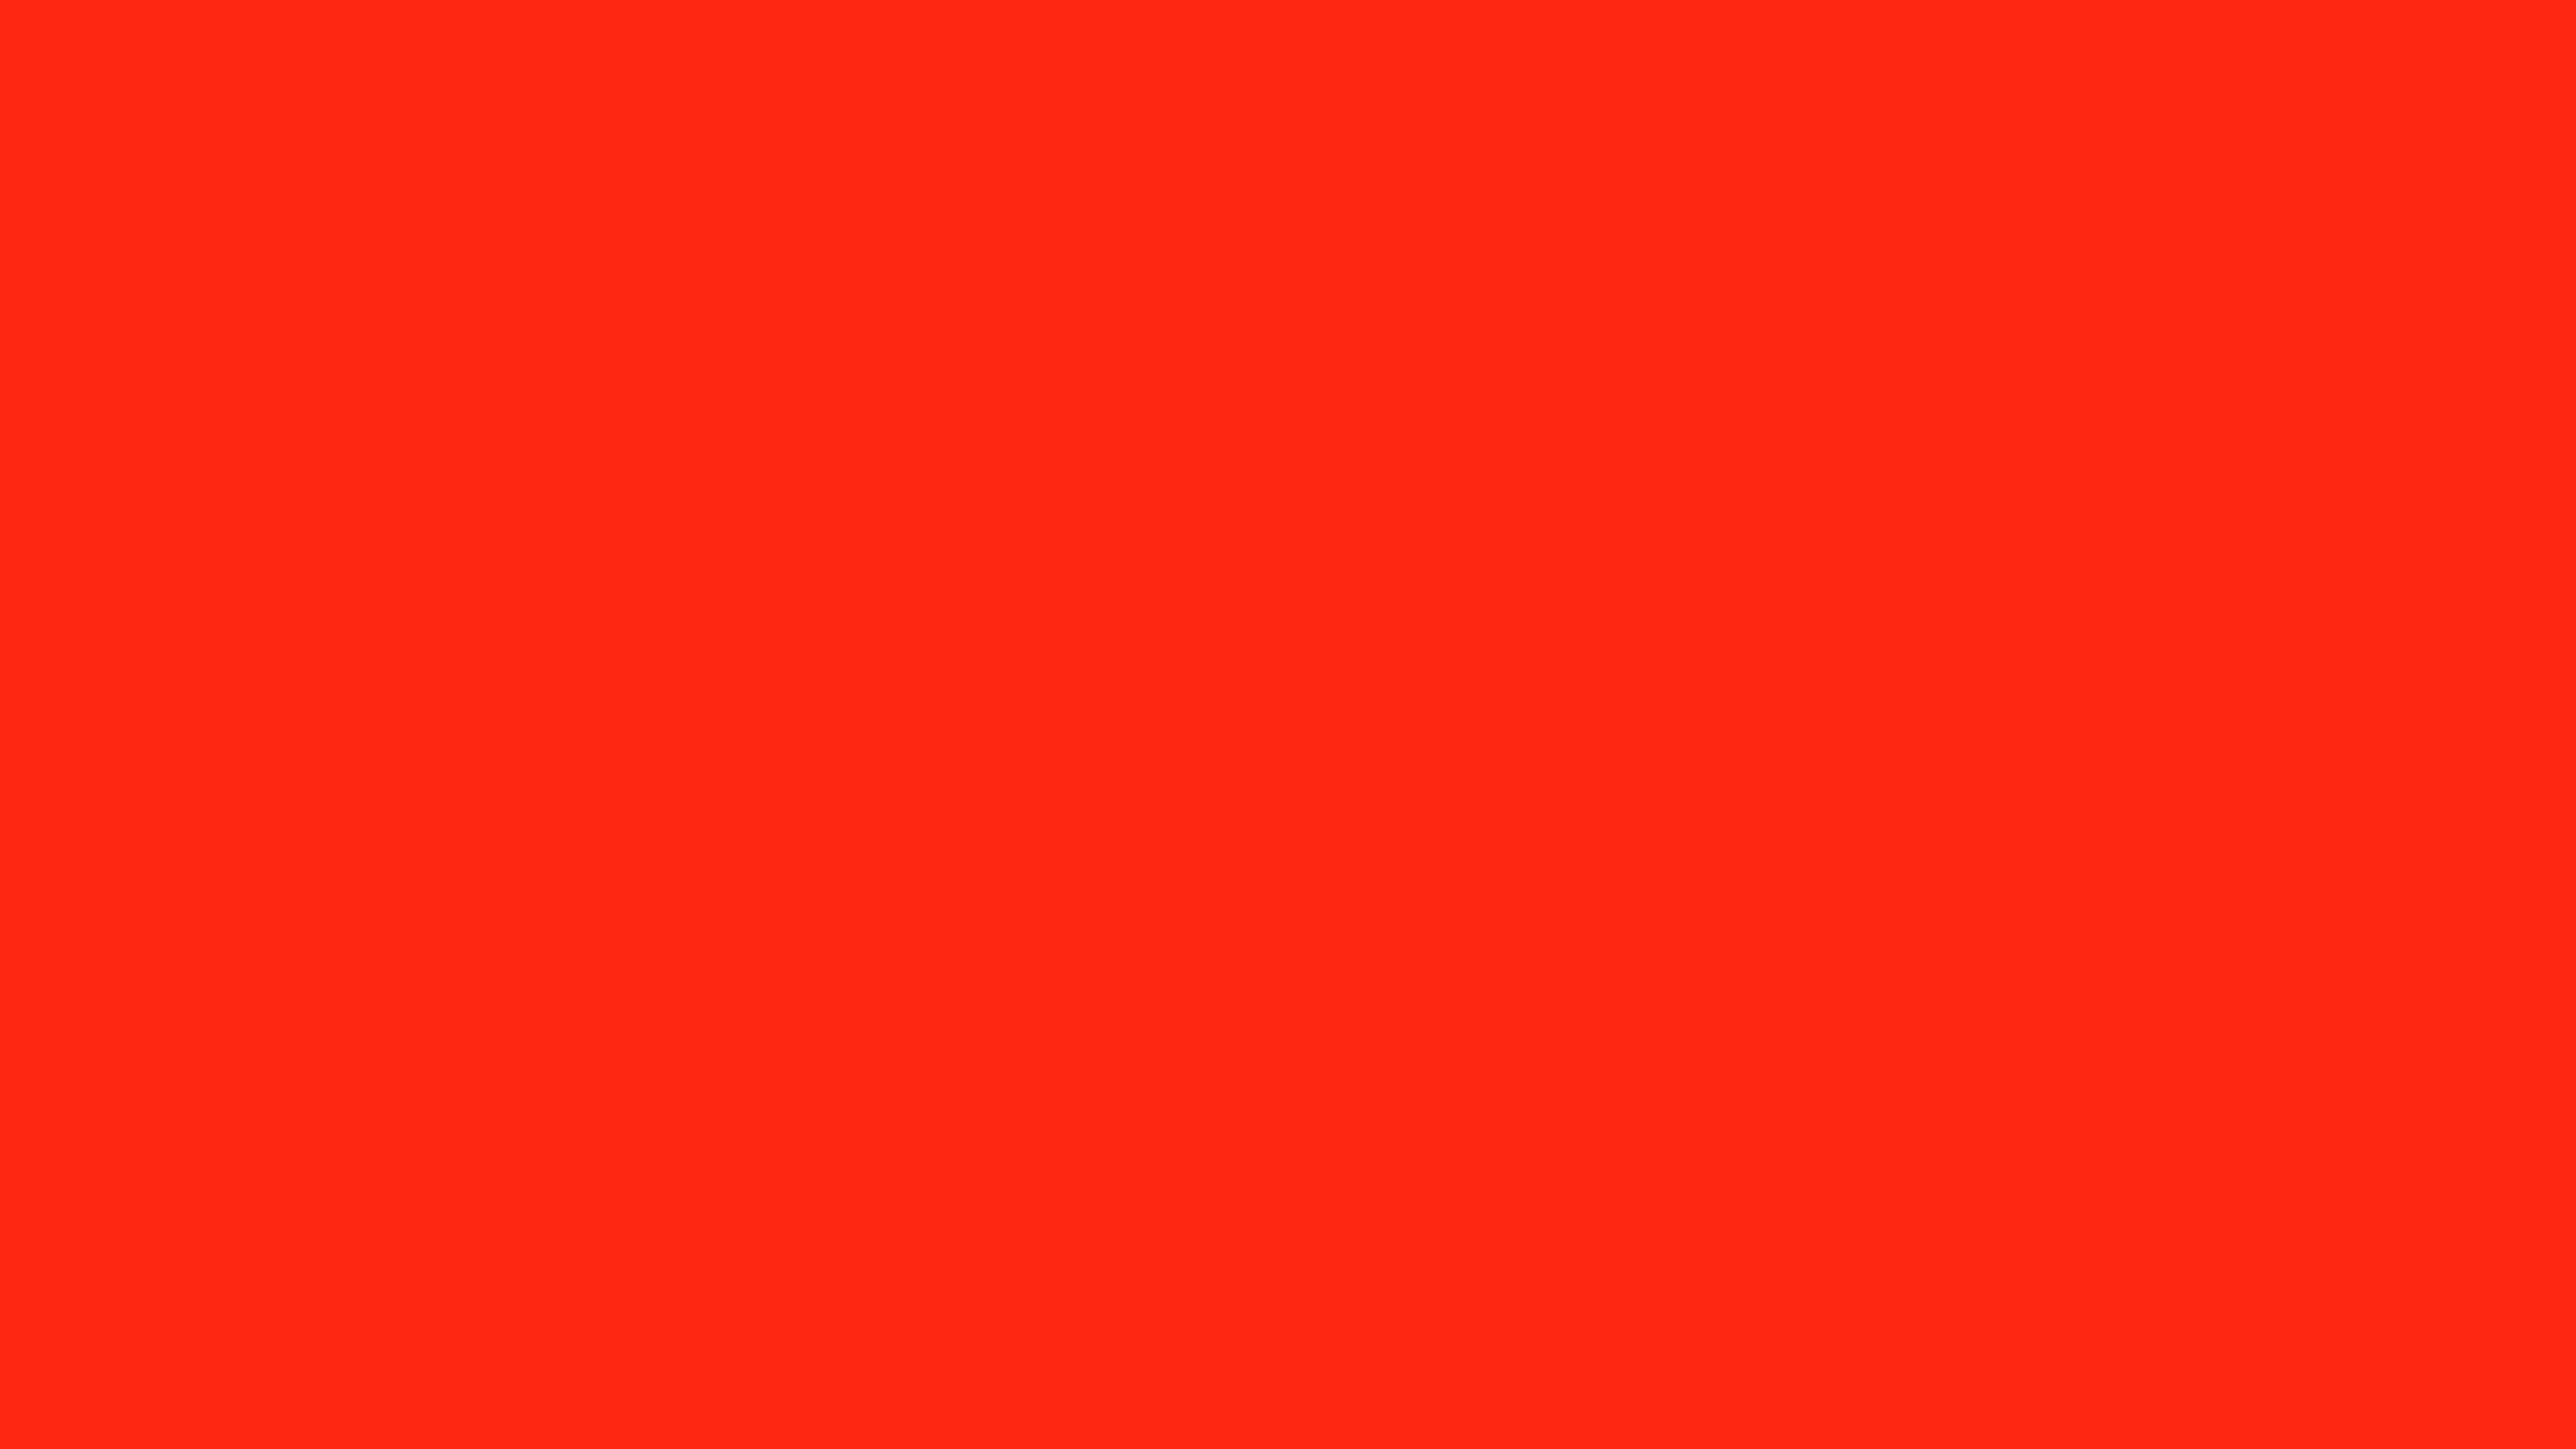 7680x4320 Red RYB Solid Color Background